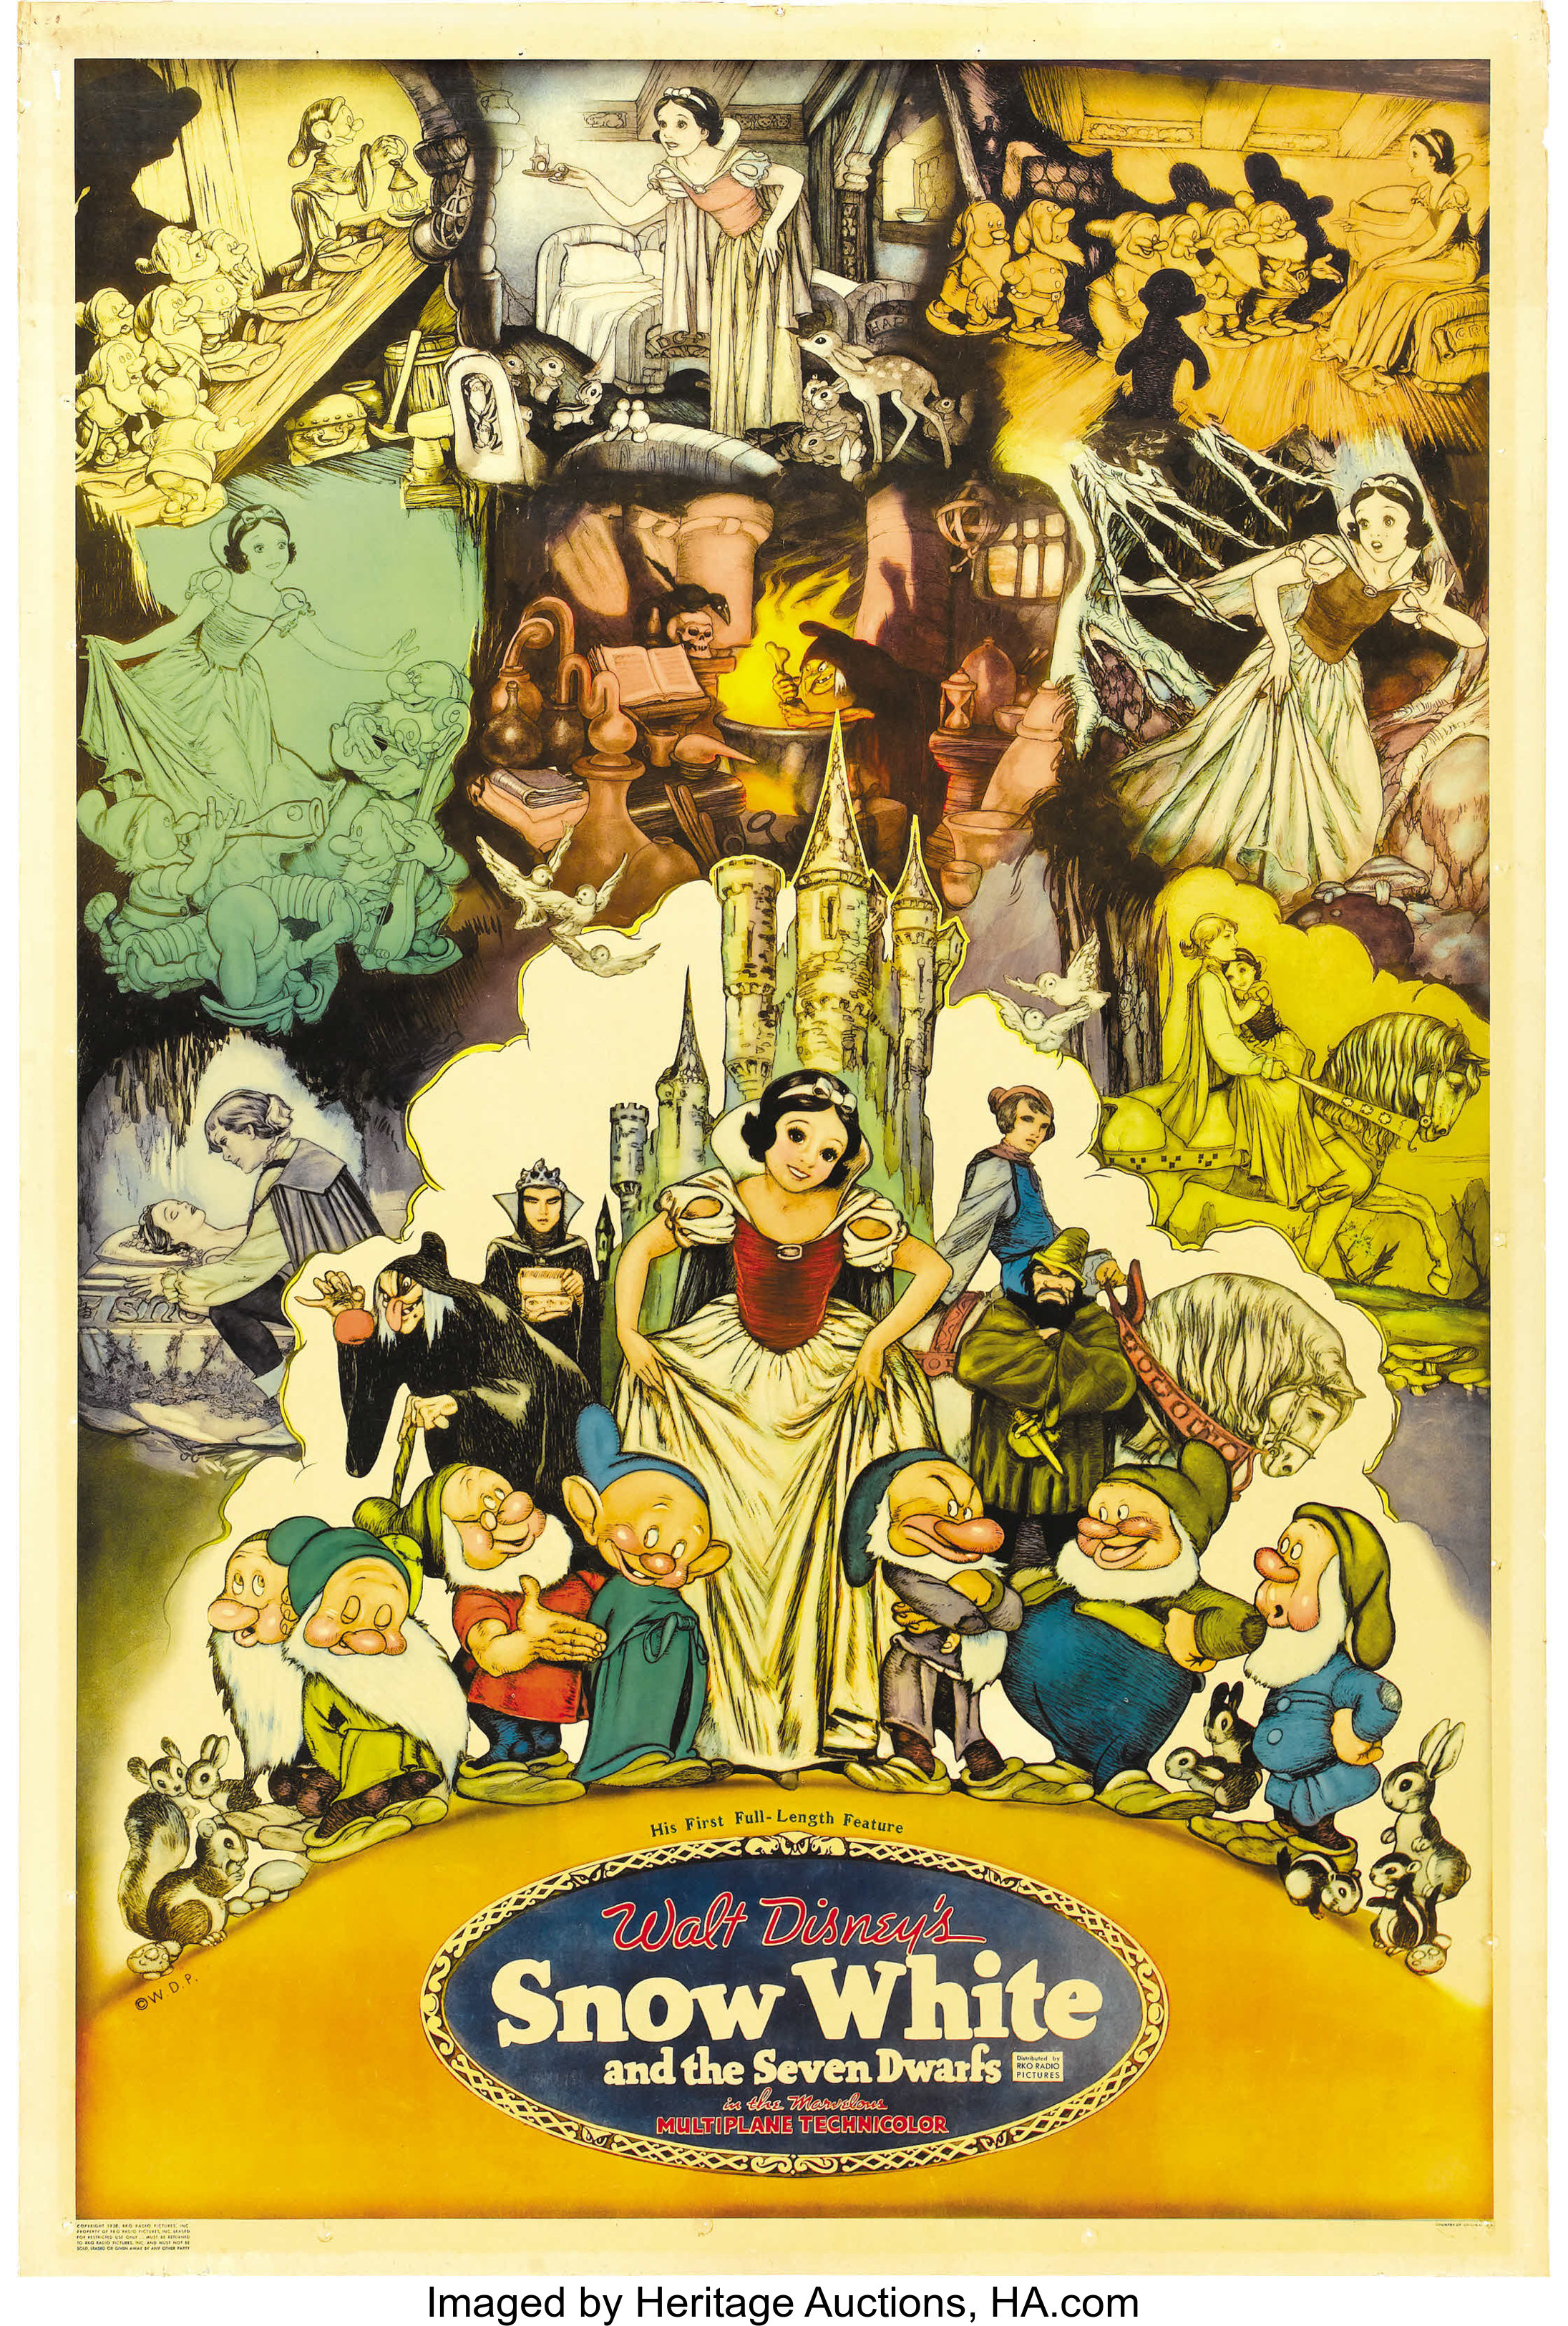 Snow White And The Seven Dwarfs Rko 1937 Poster 40 X 60 Lot 28977 Heritage Auctions